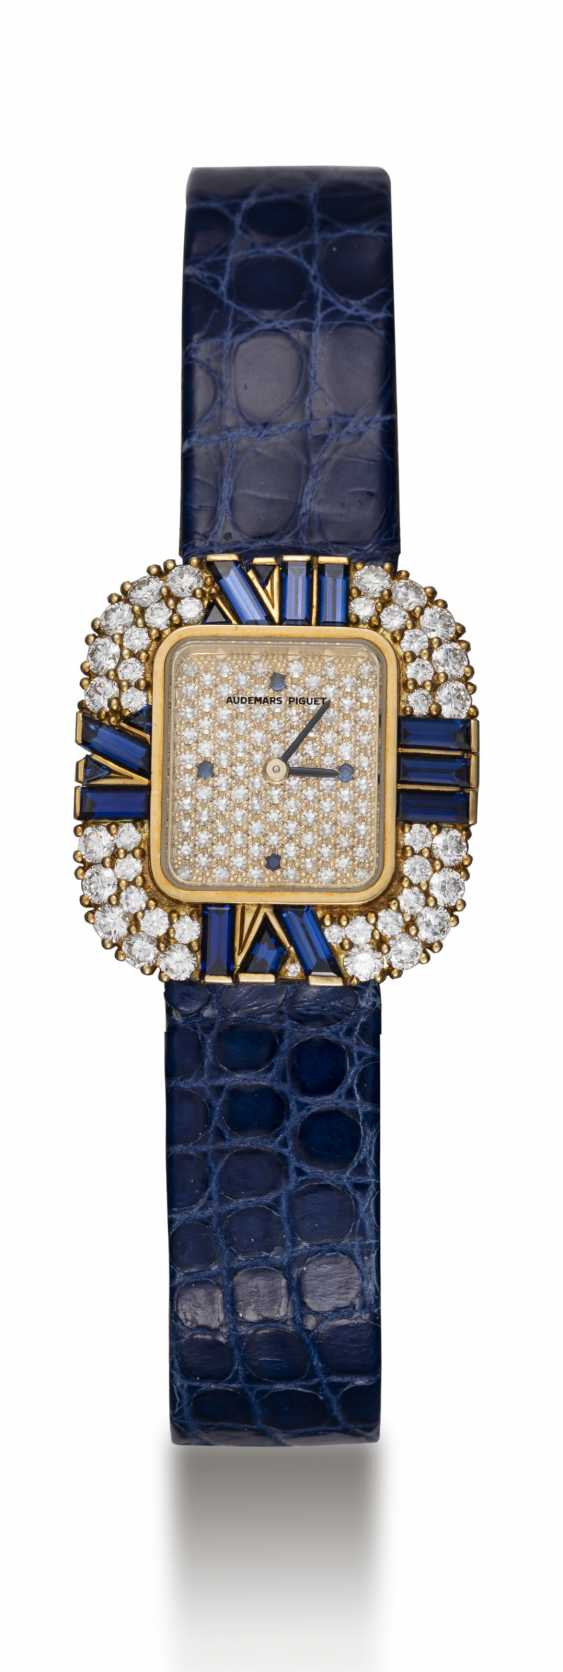 AUDEMARS PIGUET, A LADIES GOLD WRISTWATCH SET WITH DIAMONDS AND SAPPHIRES AND A PAVED DIAL - photo 3